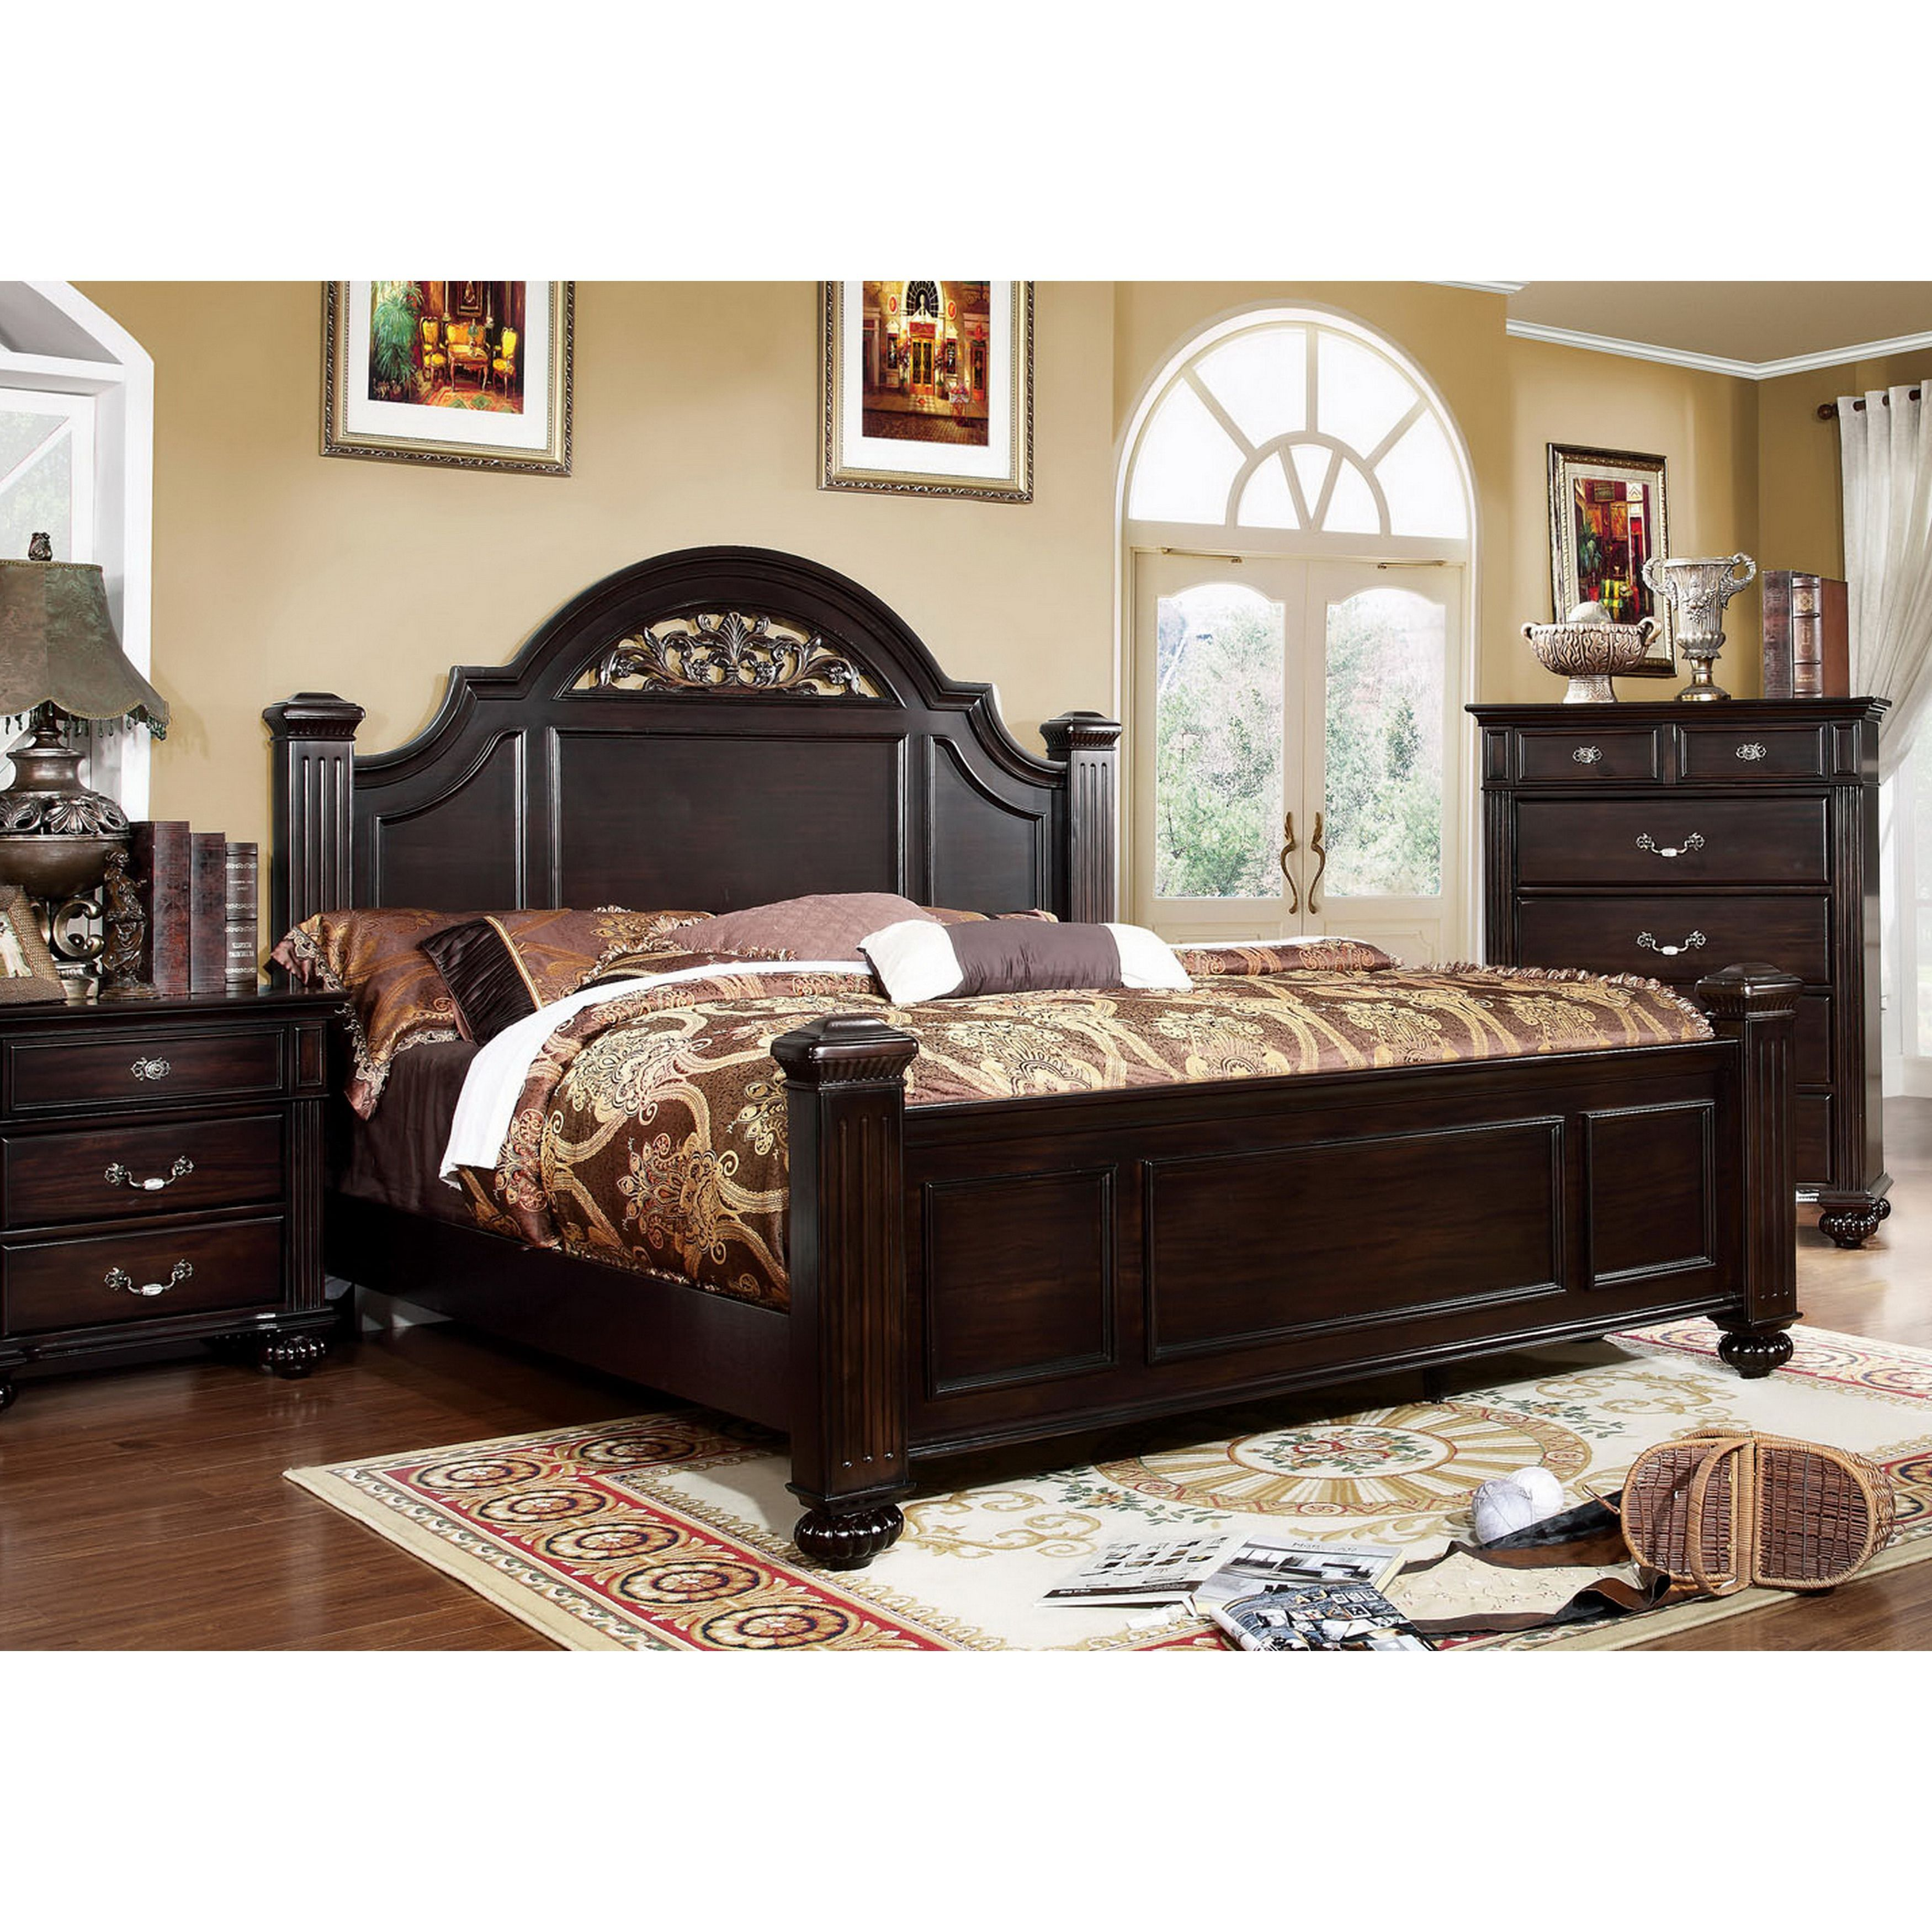 Cheap Bedroom Furniture Online: Furniture Of America Vame Traditional Walnut Queen Solid